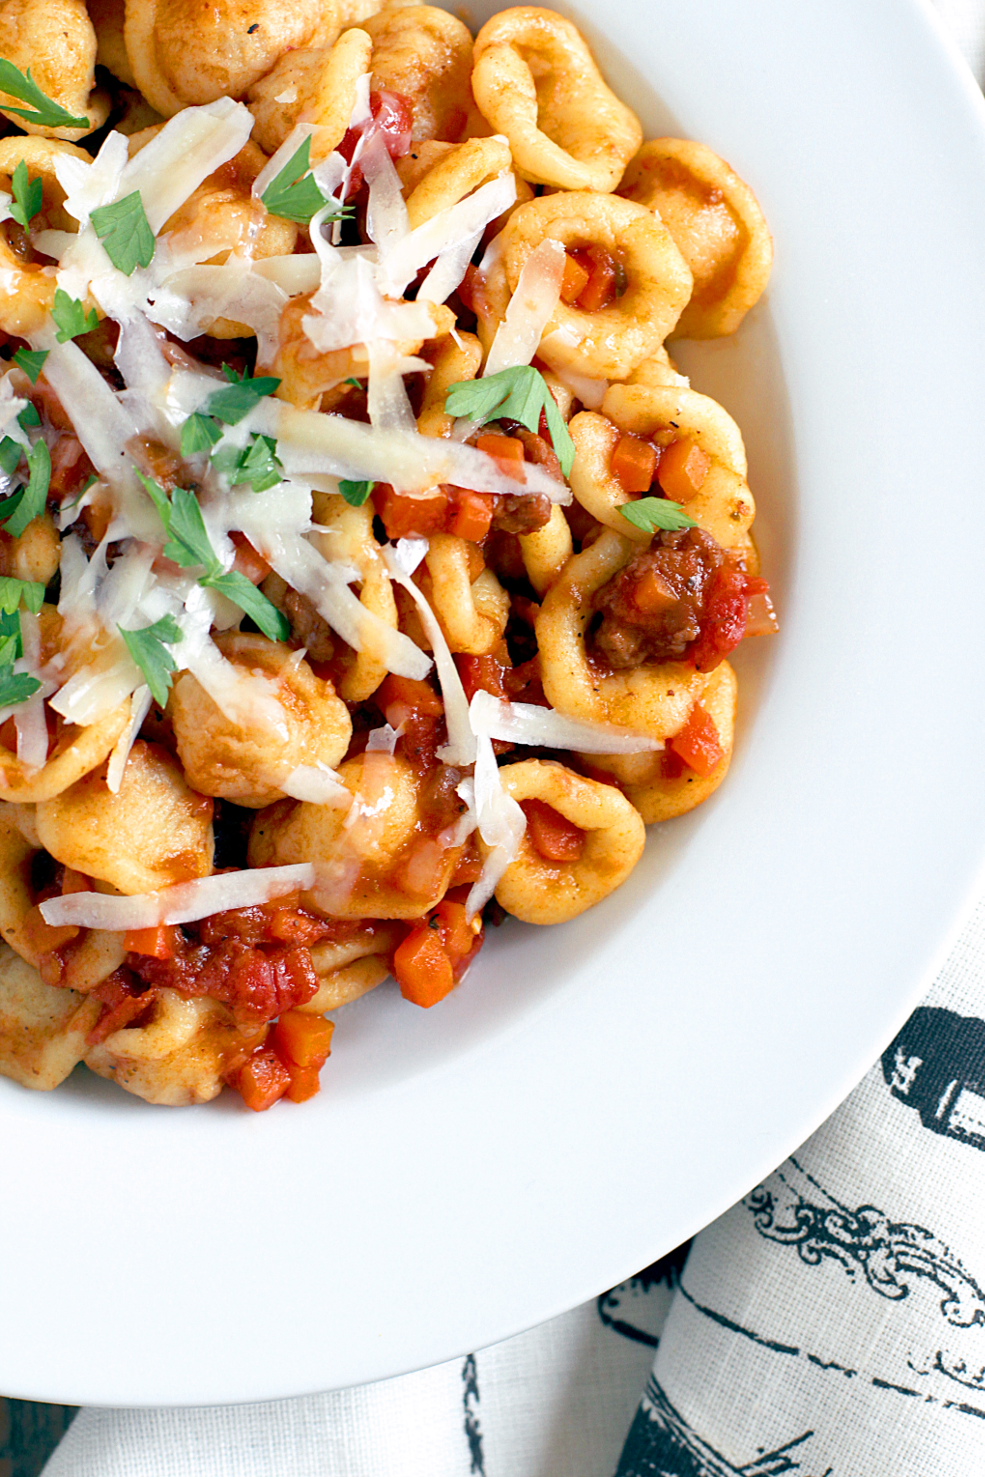 Close-up image of homemade orecchiette with spicy sausage sauce.